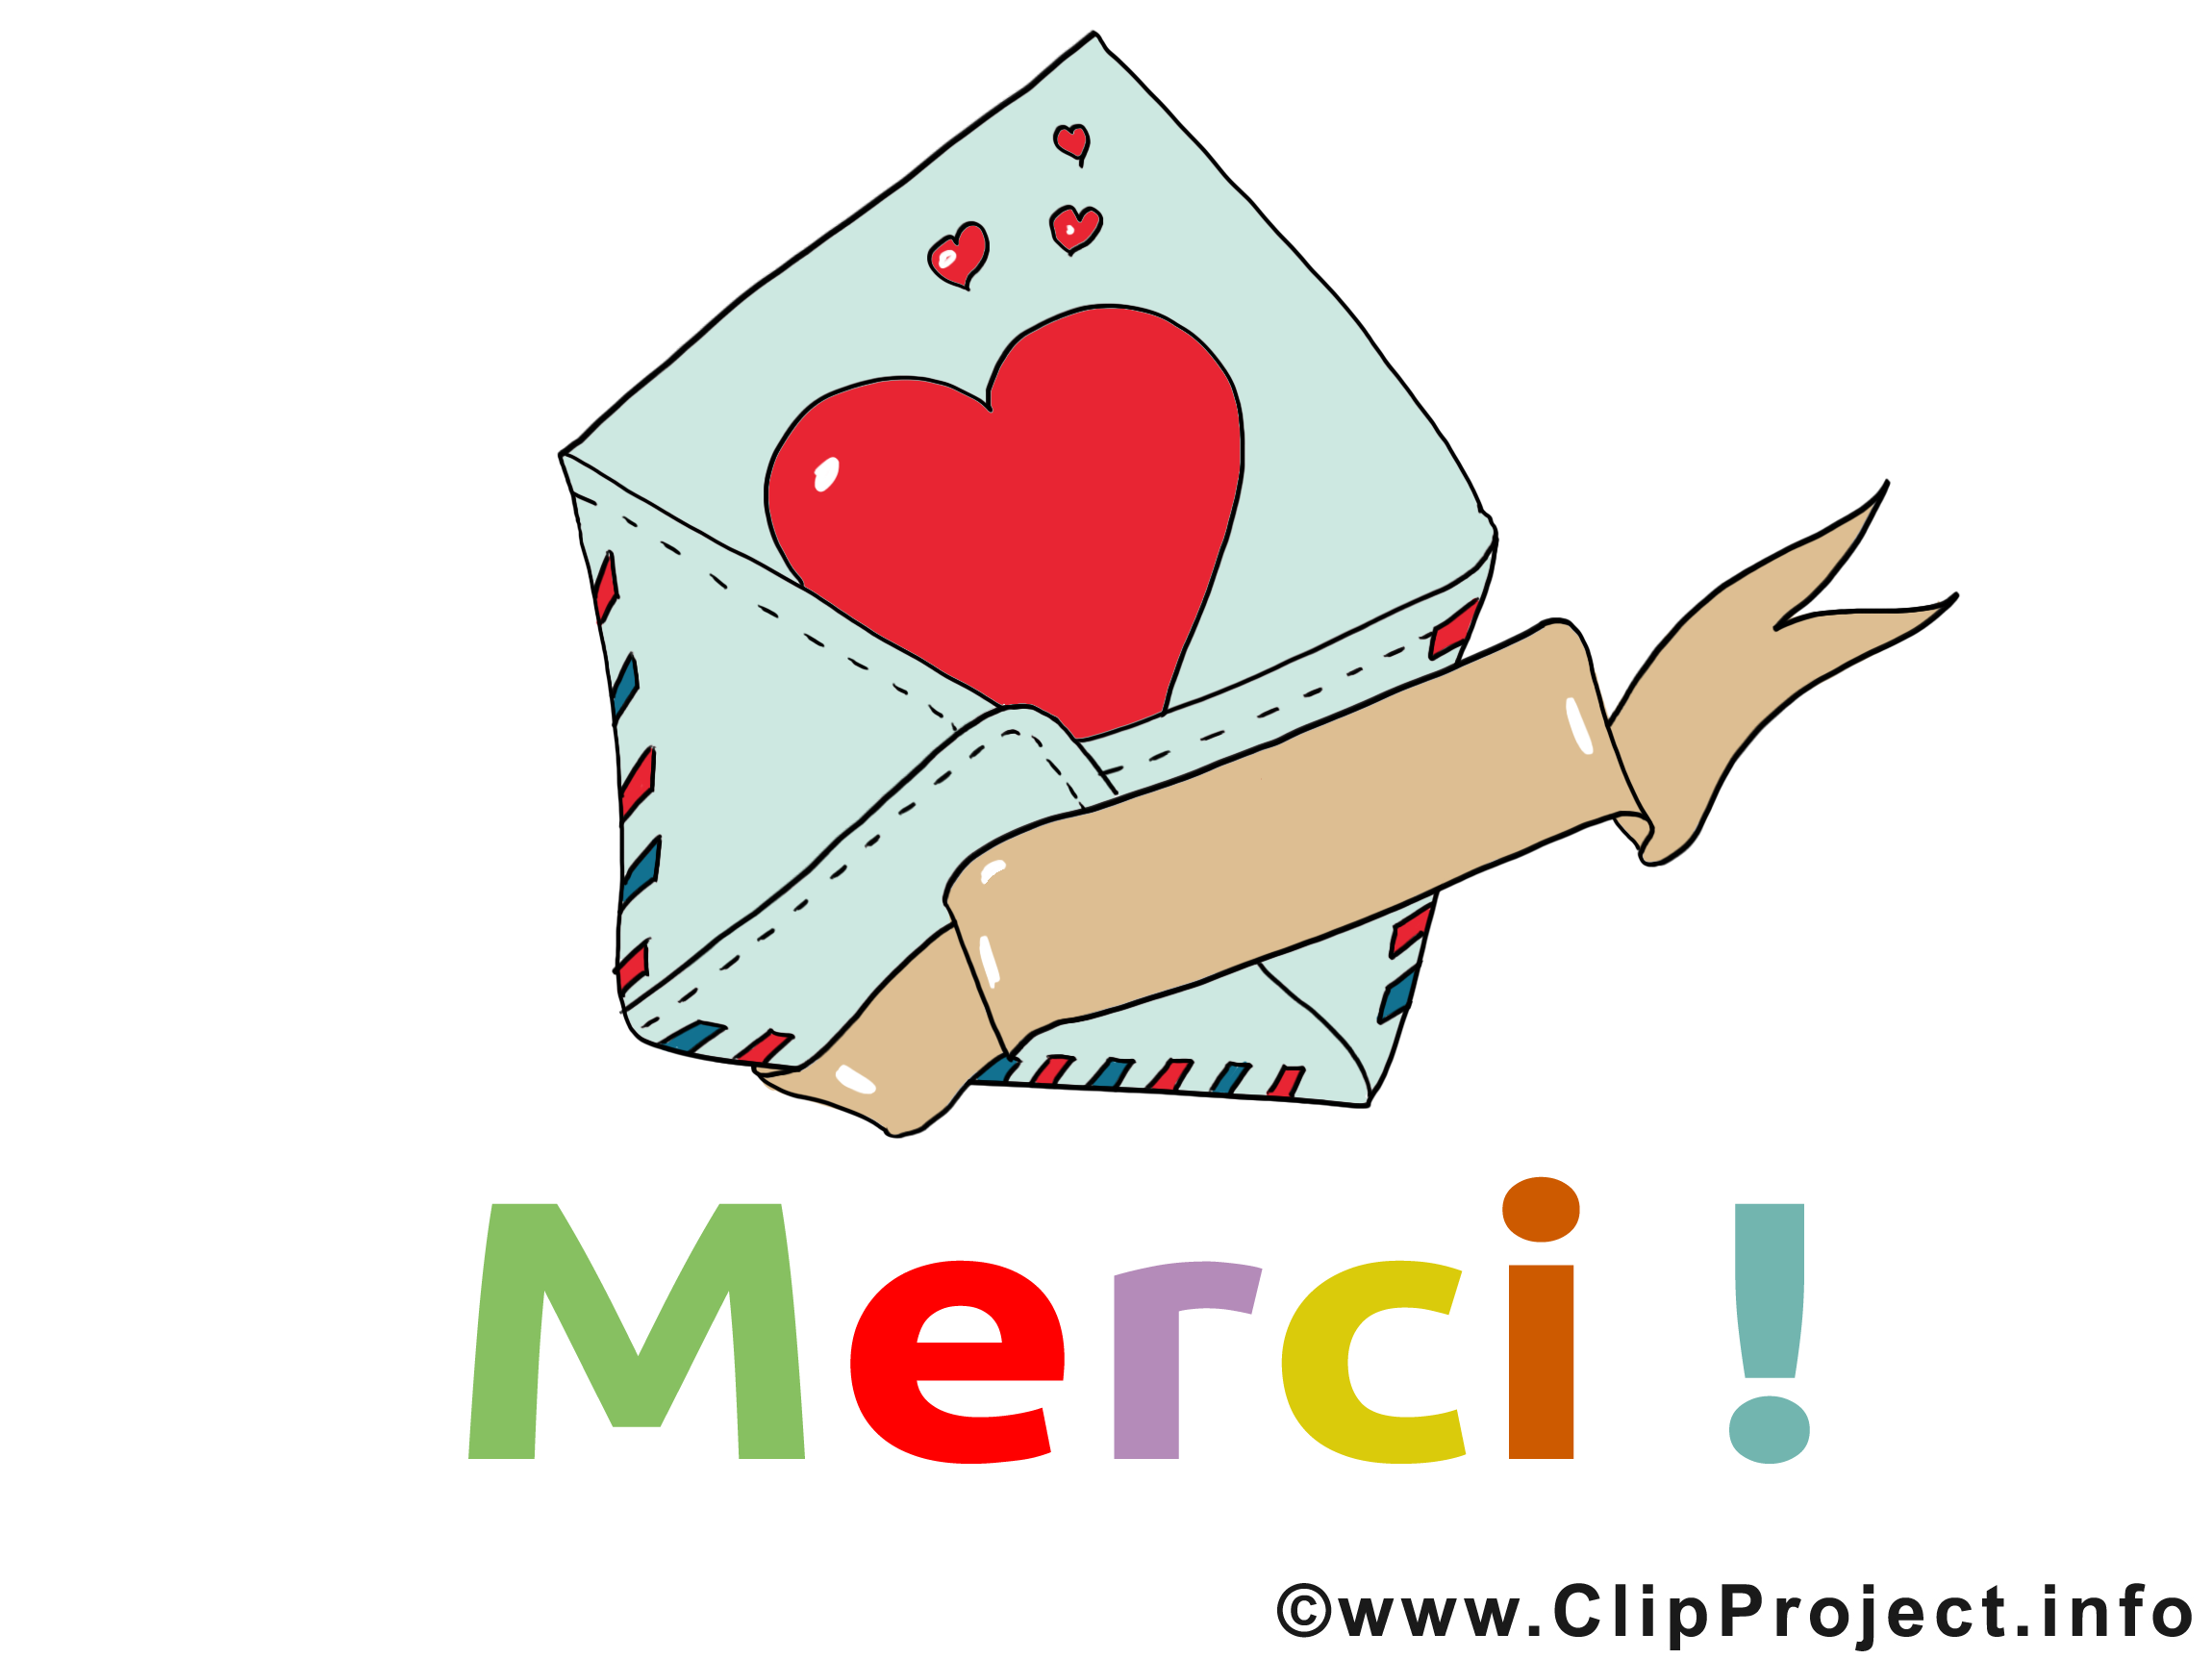 Enveloppe dessins gratuits merci clipart merci dessin picture image graphic clip art - Dessins gratuits a telecharger ...